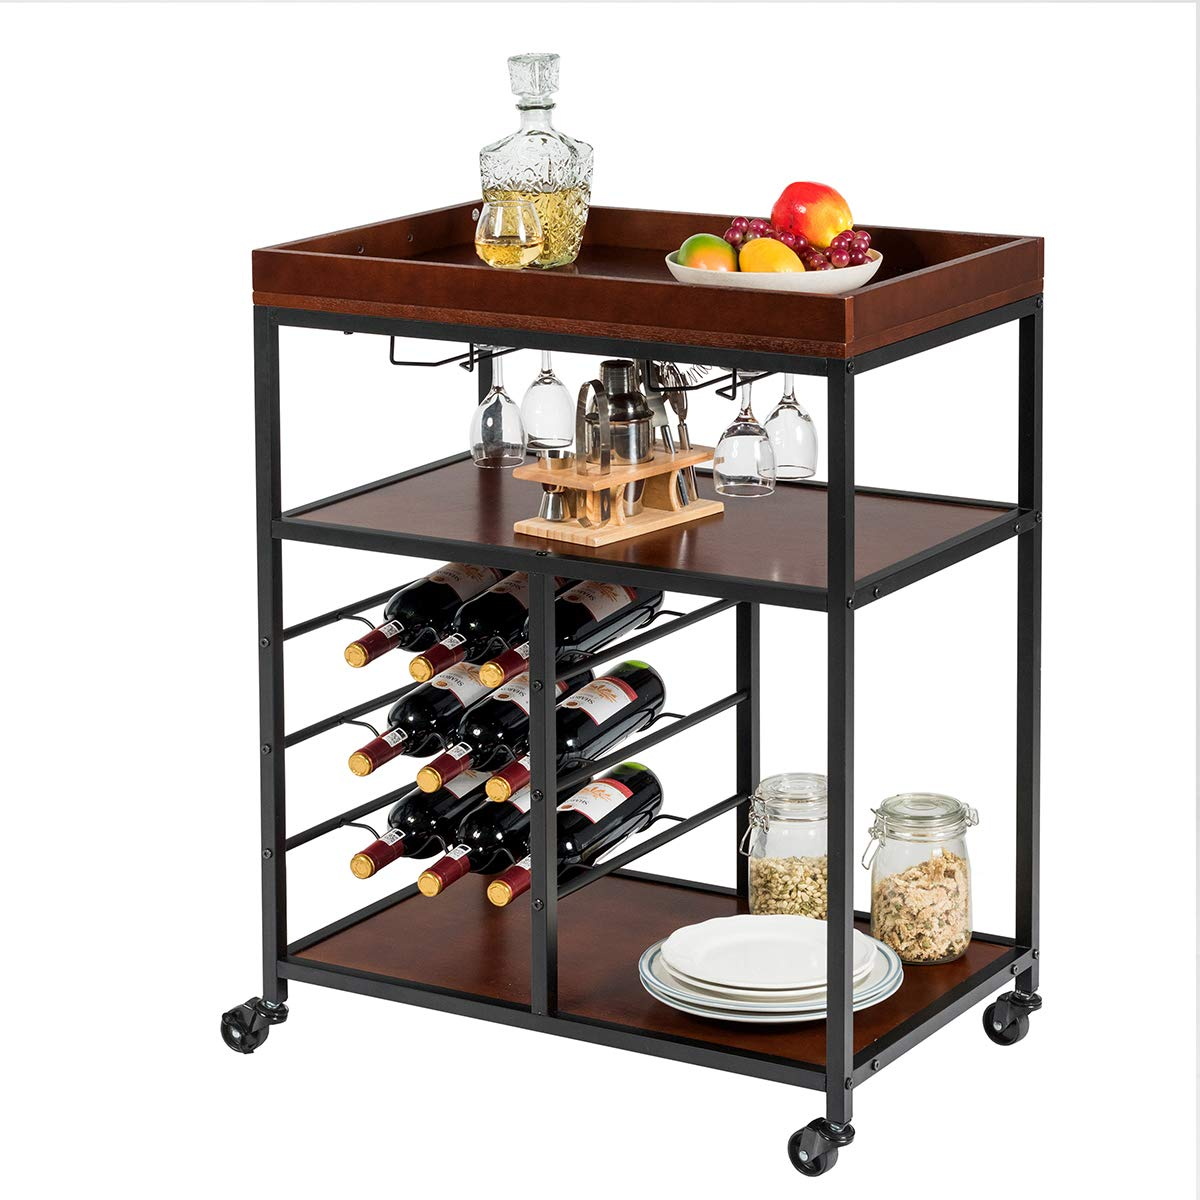 Giantex 3-Tier Kitchen Island Cart Rolling Trolley Industrial Style Serving Cart Utility Cart Wood Kitchen Stand with Glasses Holder and 9 Wine Bottles Rack Metal Frame and Castors Rustic Brown